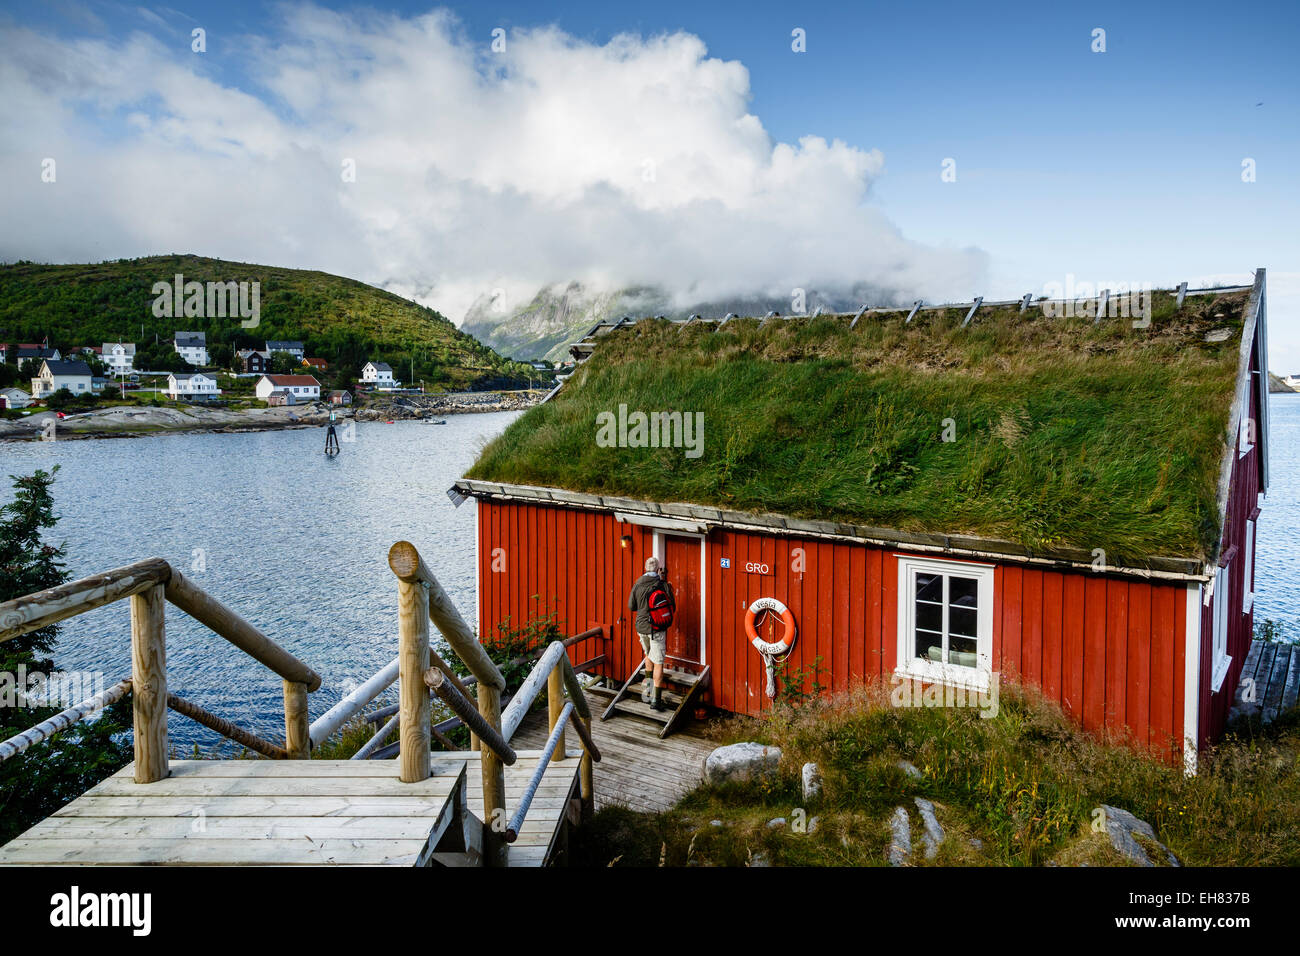 Traditional fishing cabin converted to a hotel, Reine Rorbuer hotel in Reine, Lofoten Islands, Arctic, Norway.Scandinavia - Stock Image